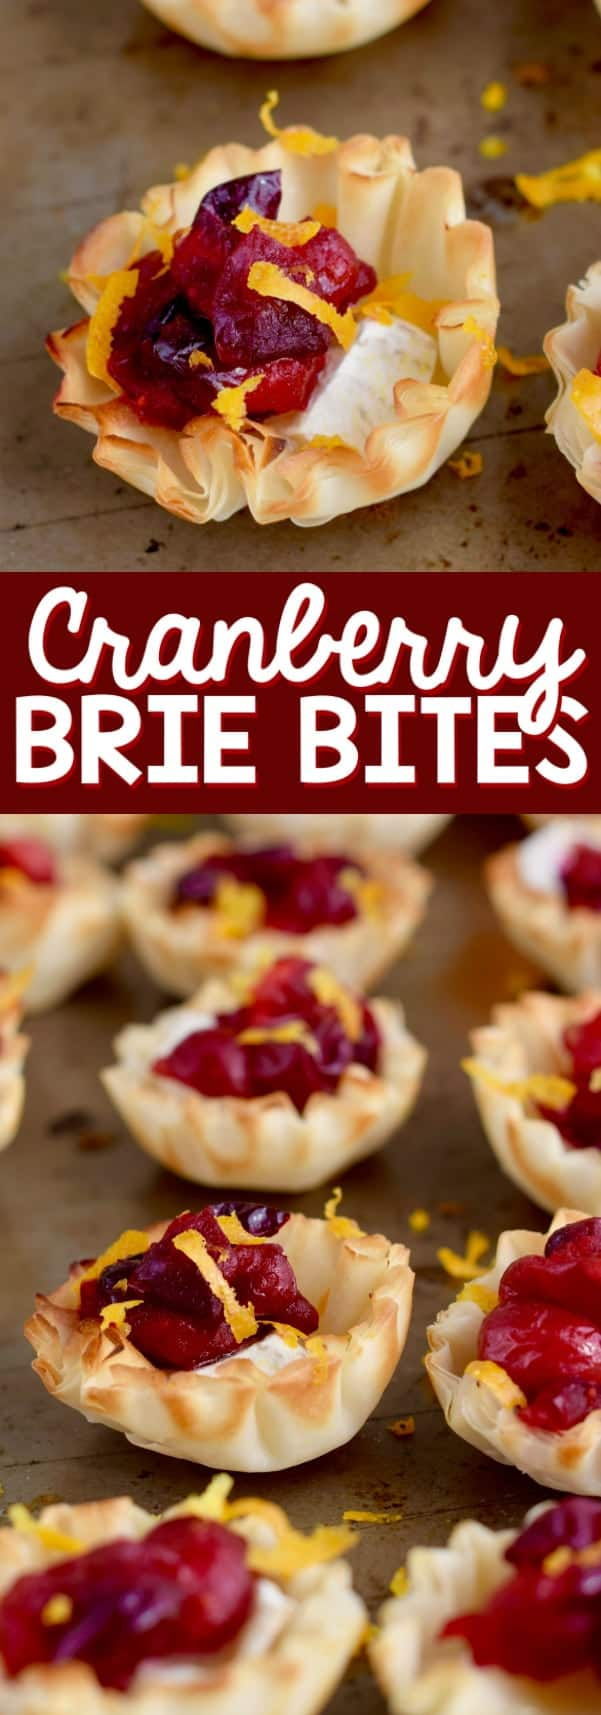 These Cranberry Brie Bites make the perfect holiday appetizer recipe! Made with fillo shells, which are similar to phyllo dough, they come together so fast and are like little brie and cranberry tartlets.